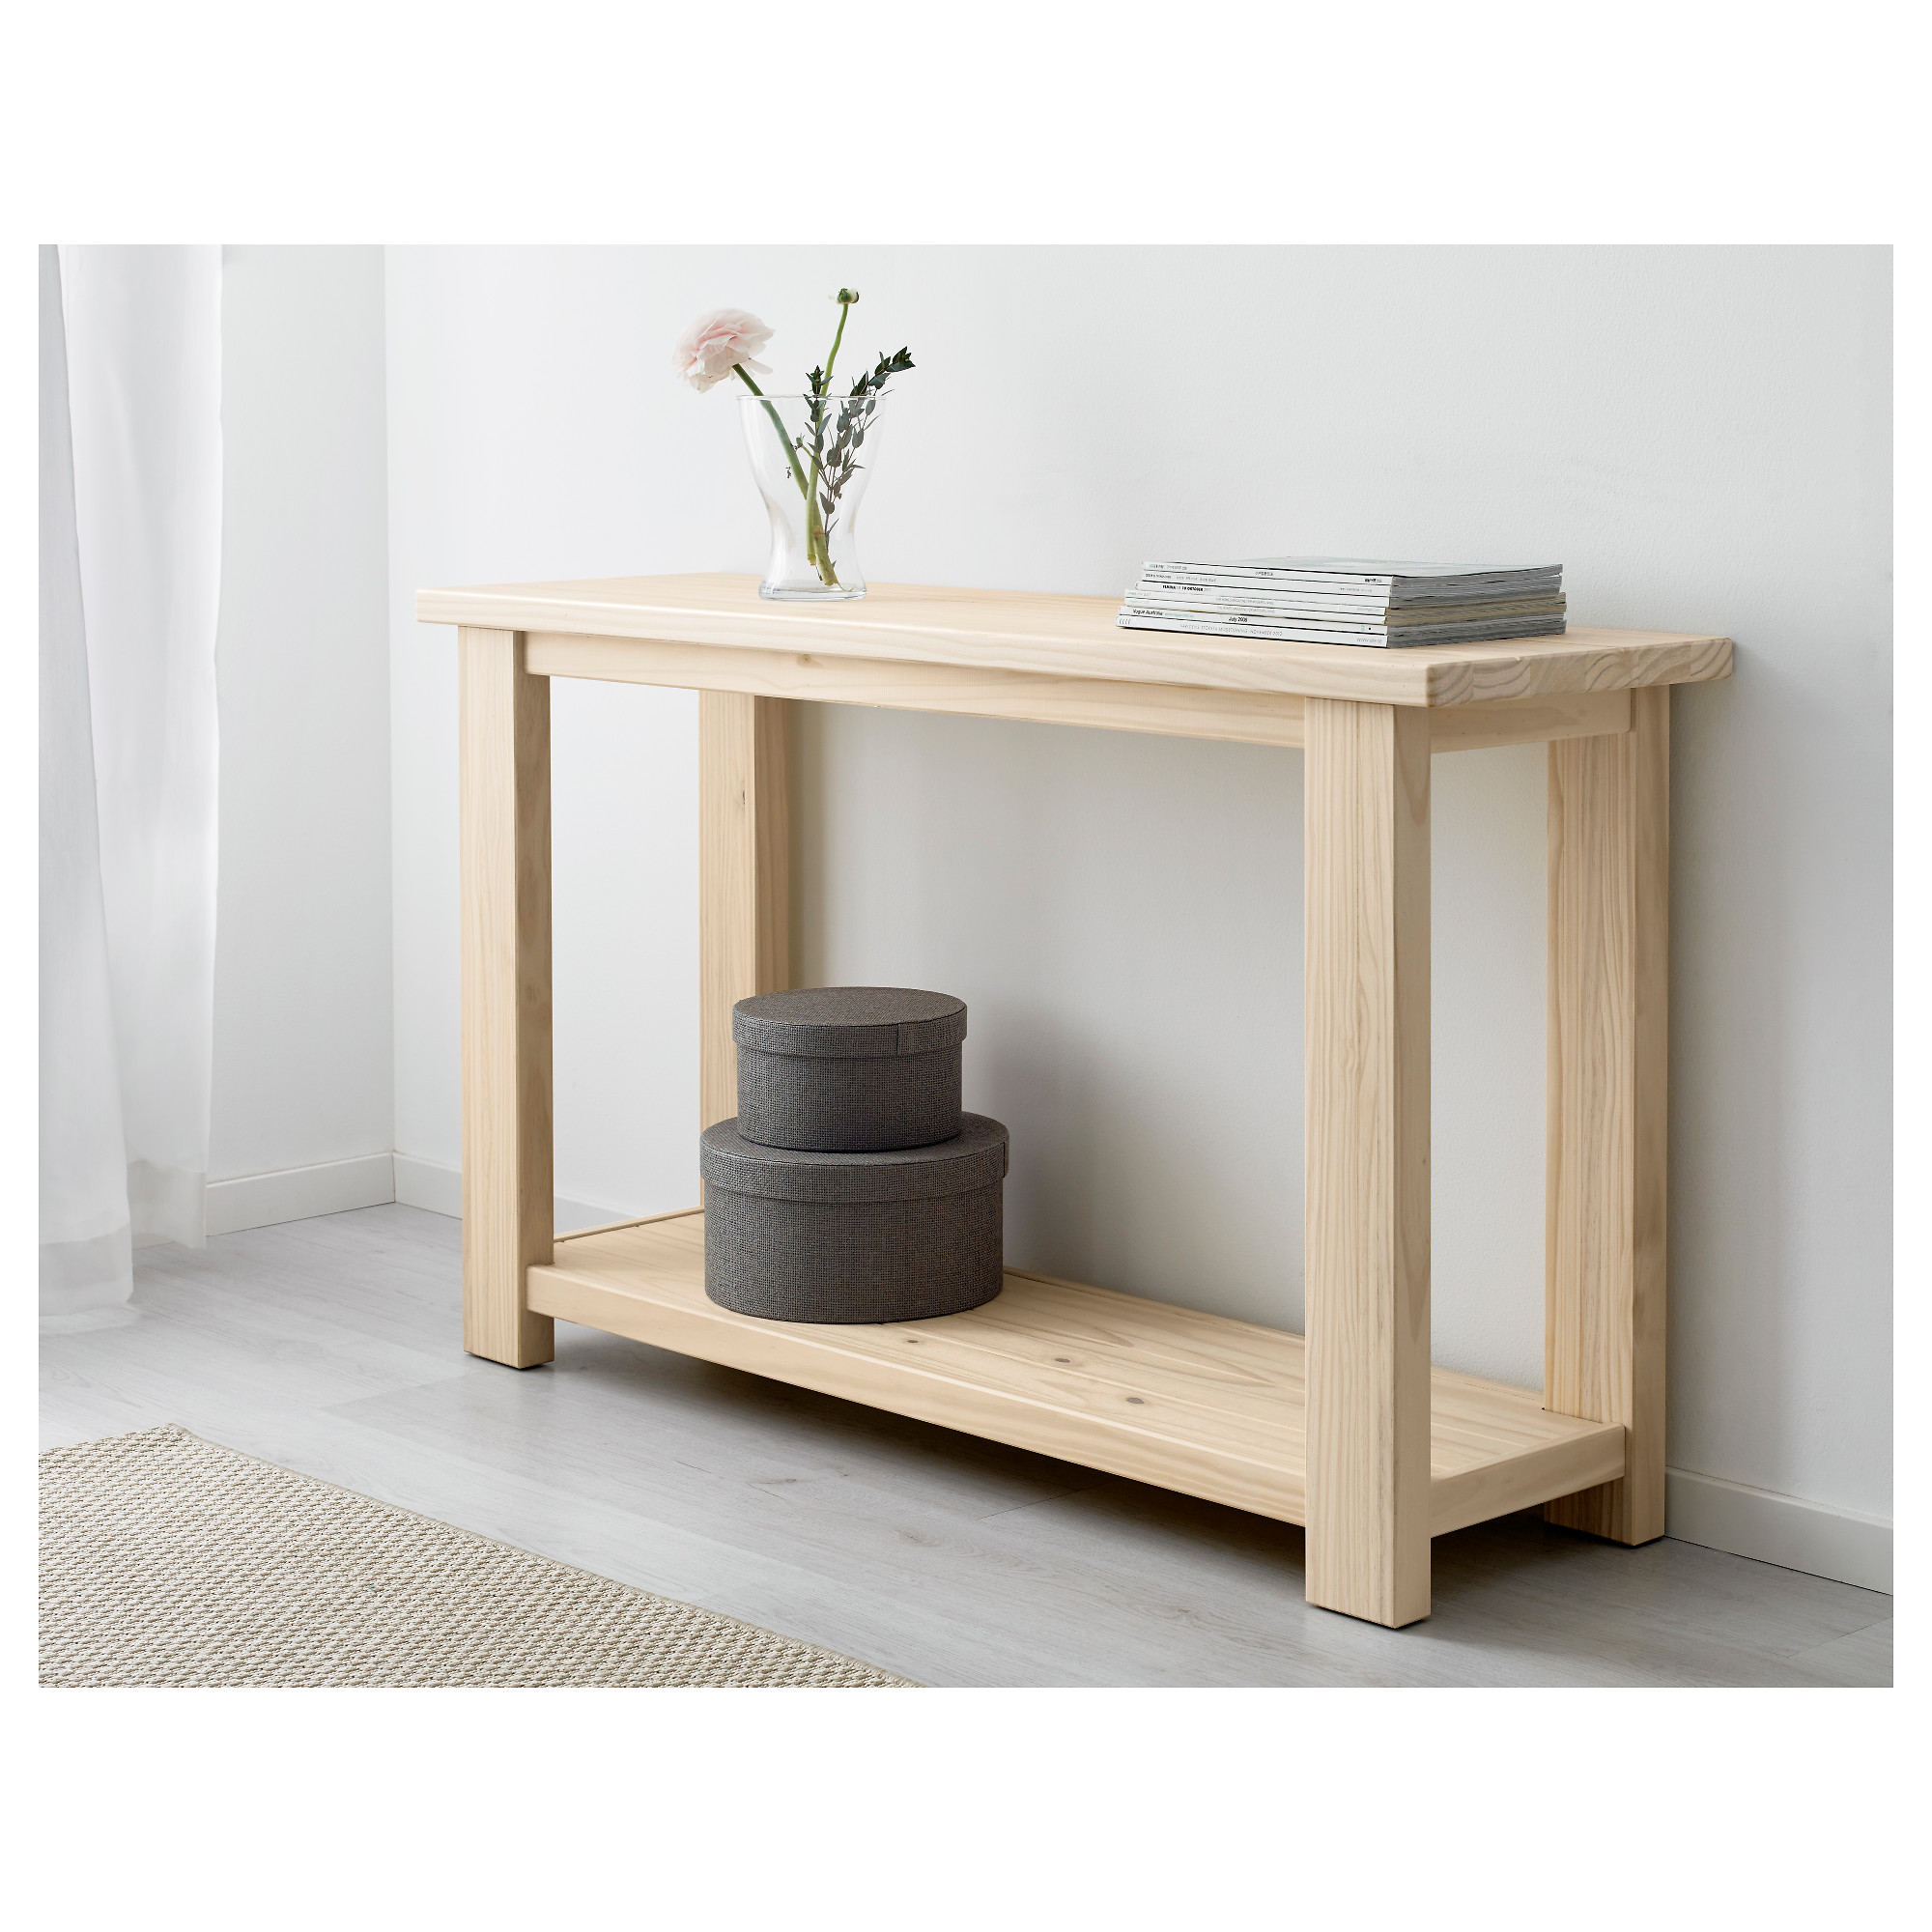 REKARNE Console table IKEA